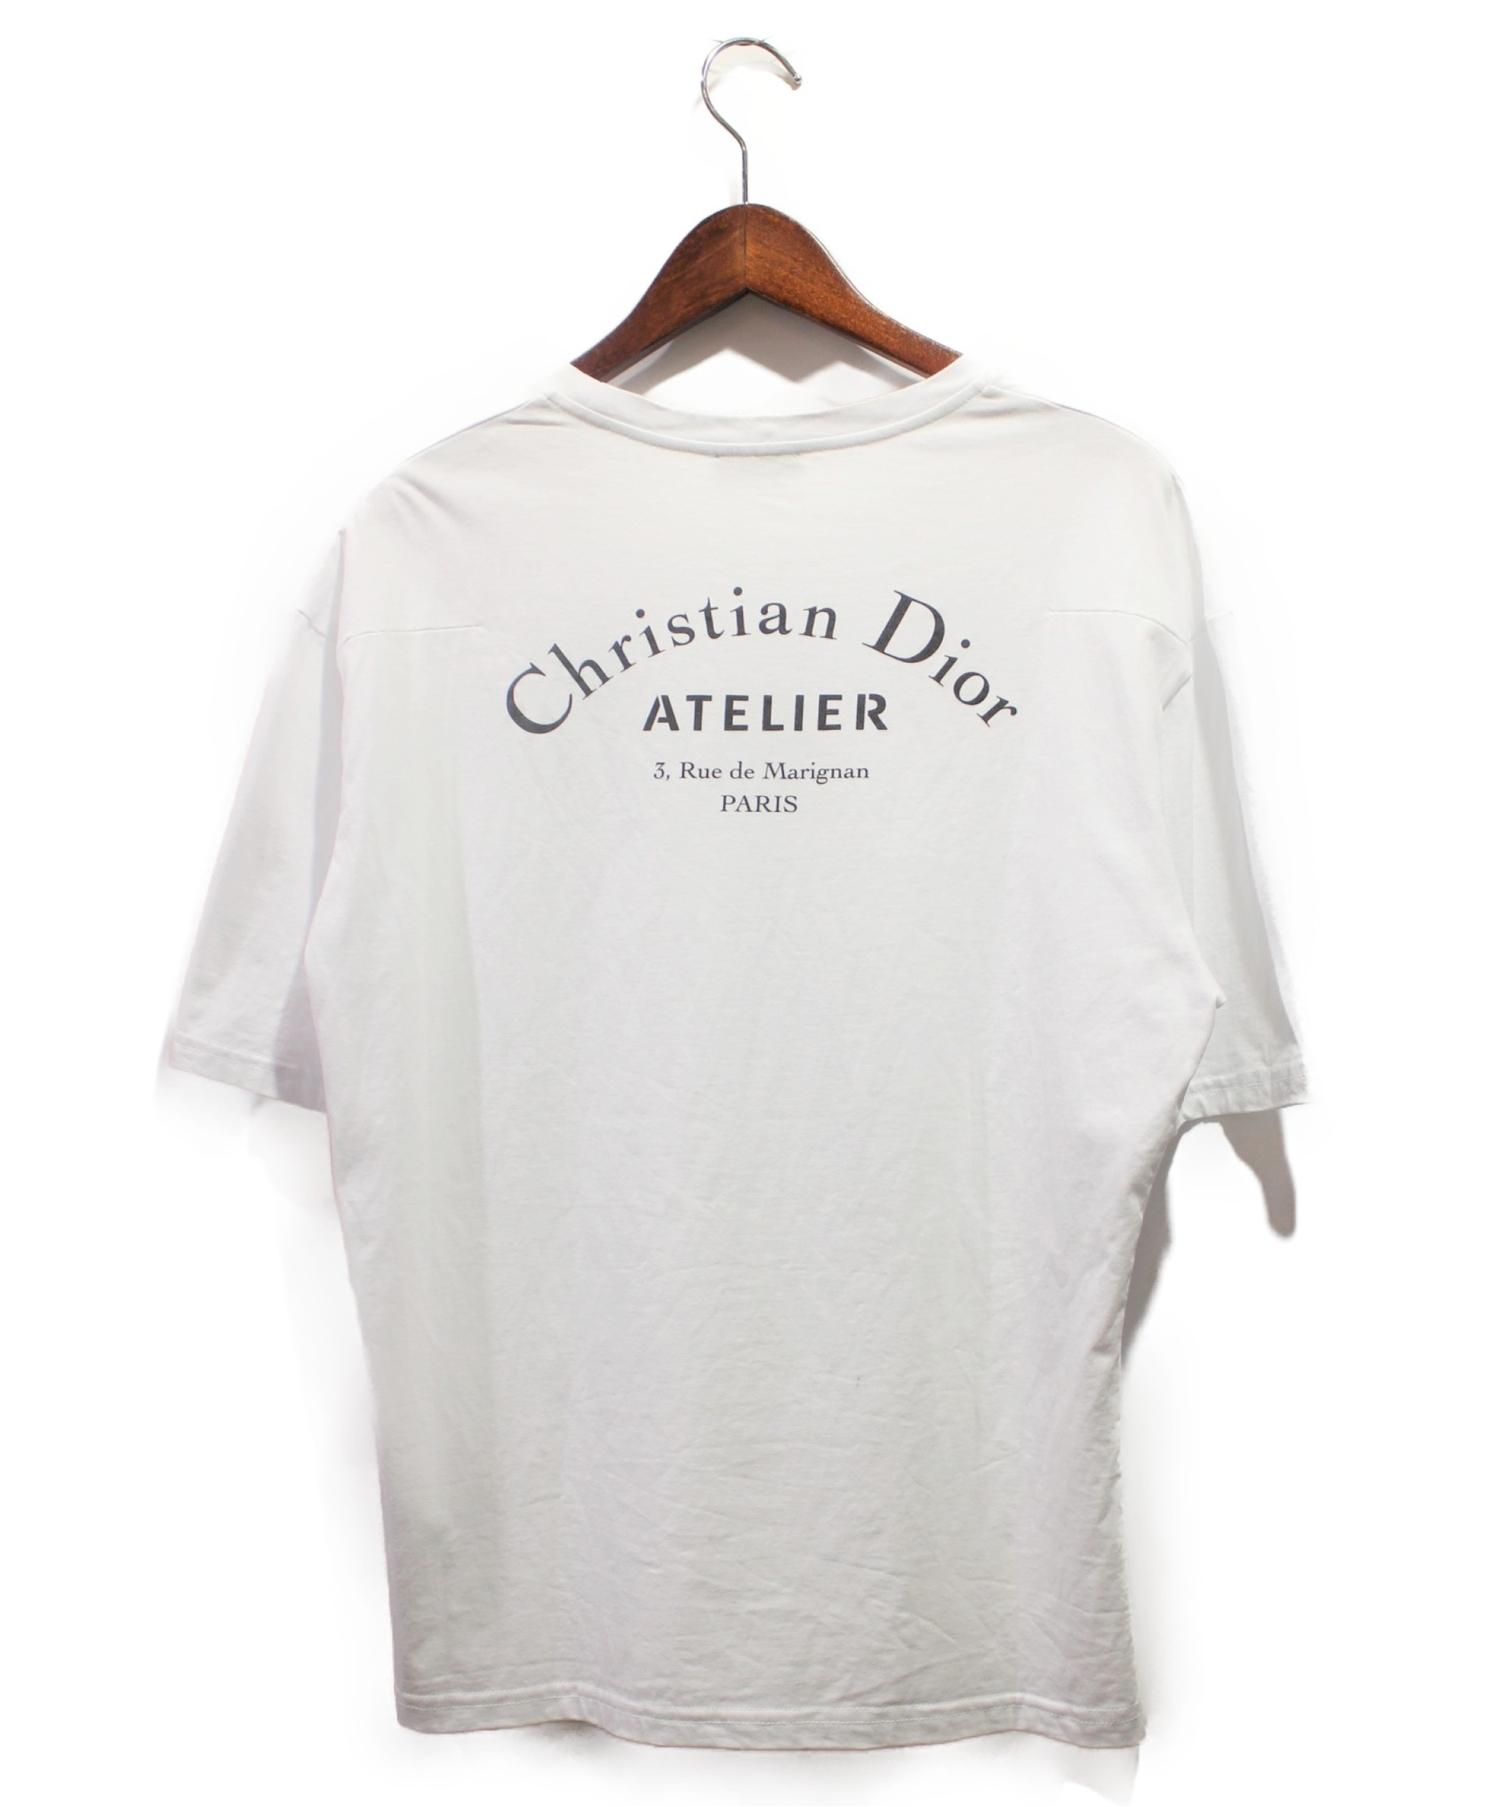 check out 189f0 cd606 [中古]Dior Homme(ディオールオム)のメンズ トップス 19SS/アトリエロゴTシャツ